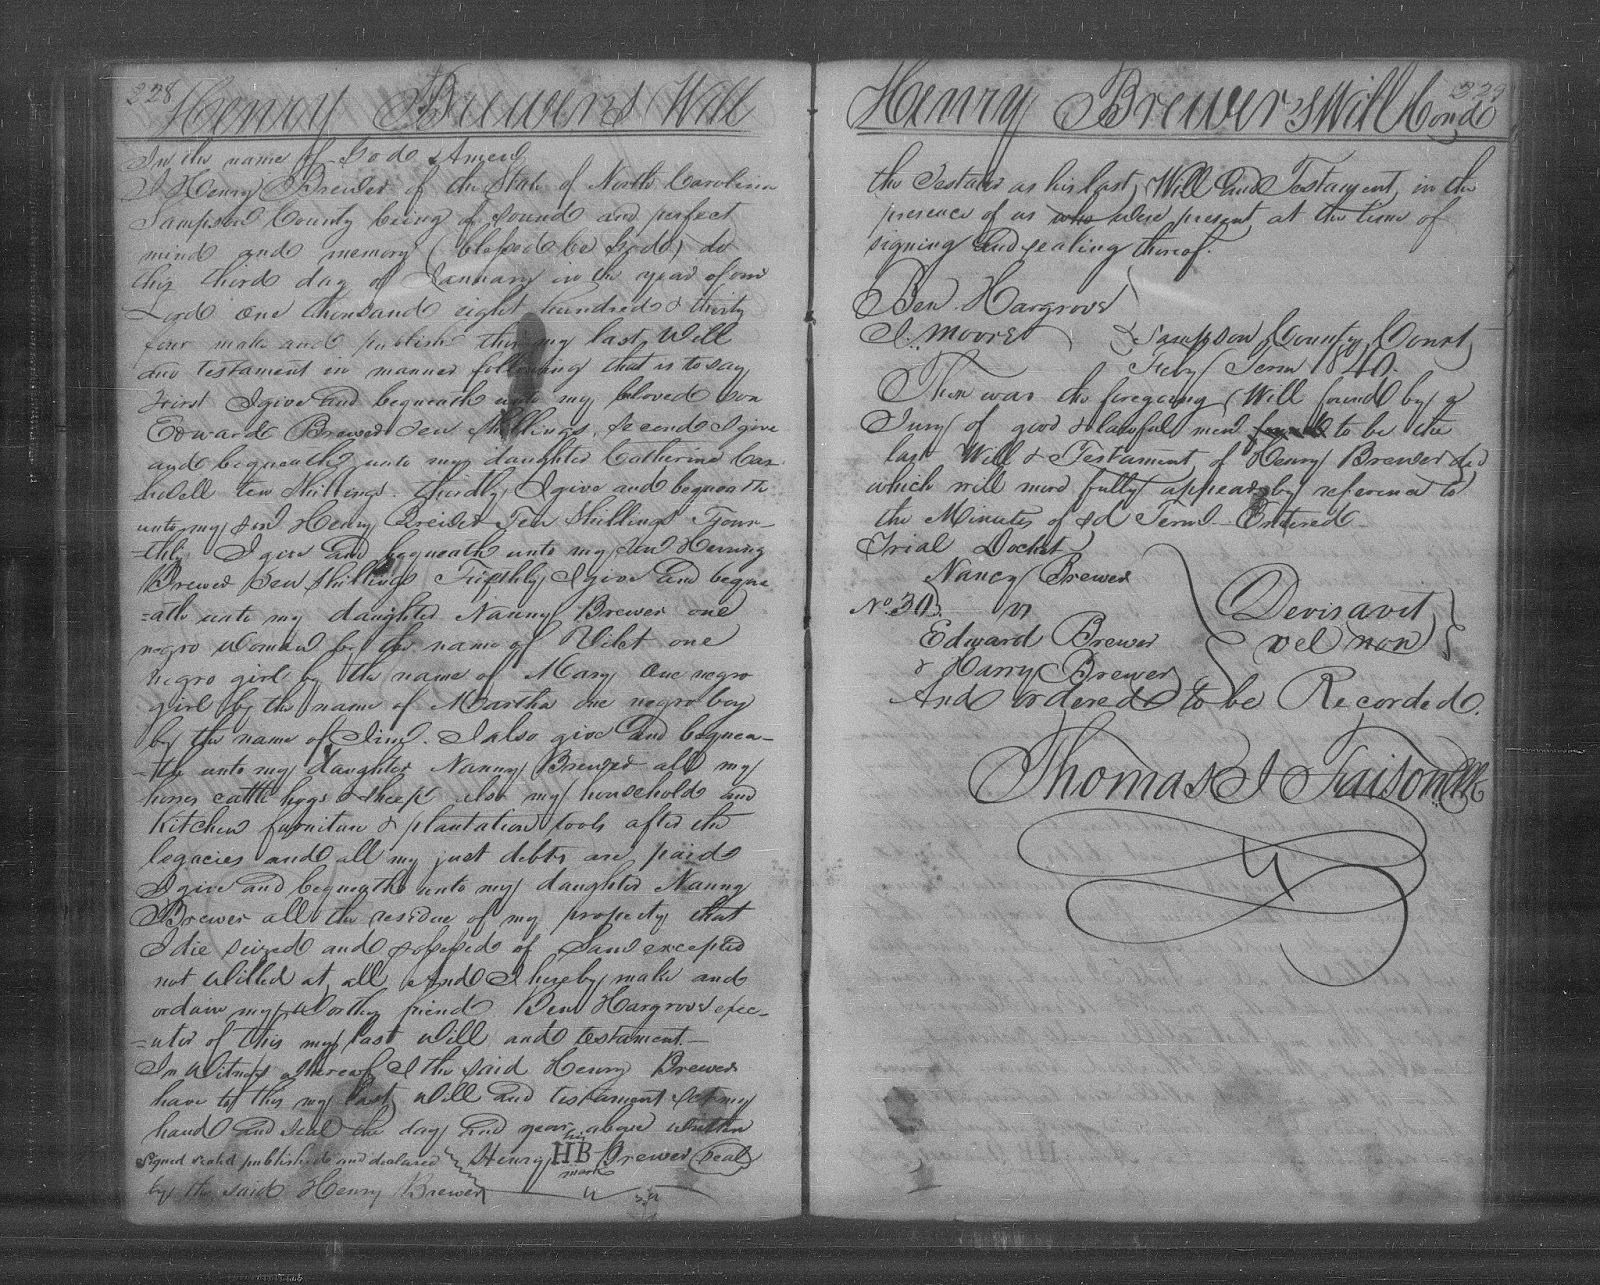 The Will of Henry Brewer of Sampson County, North Carolina